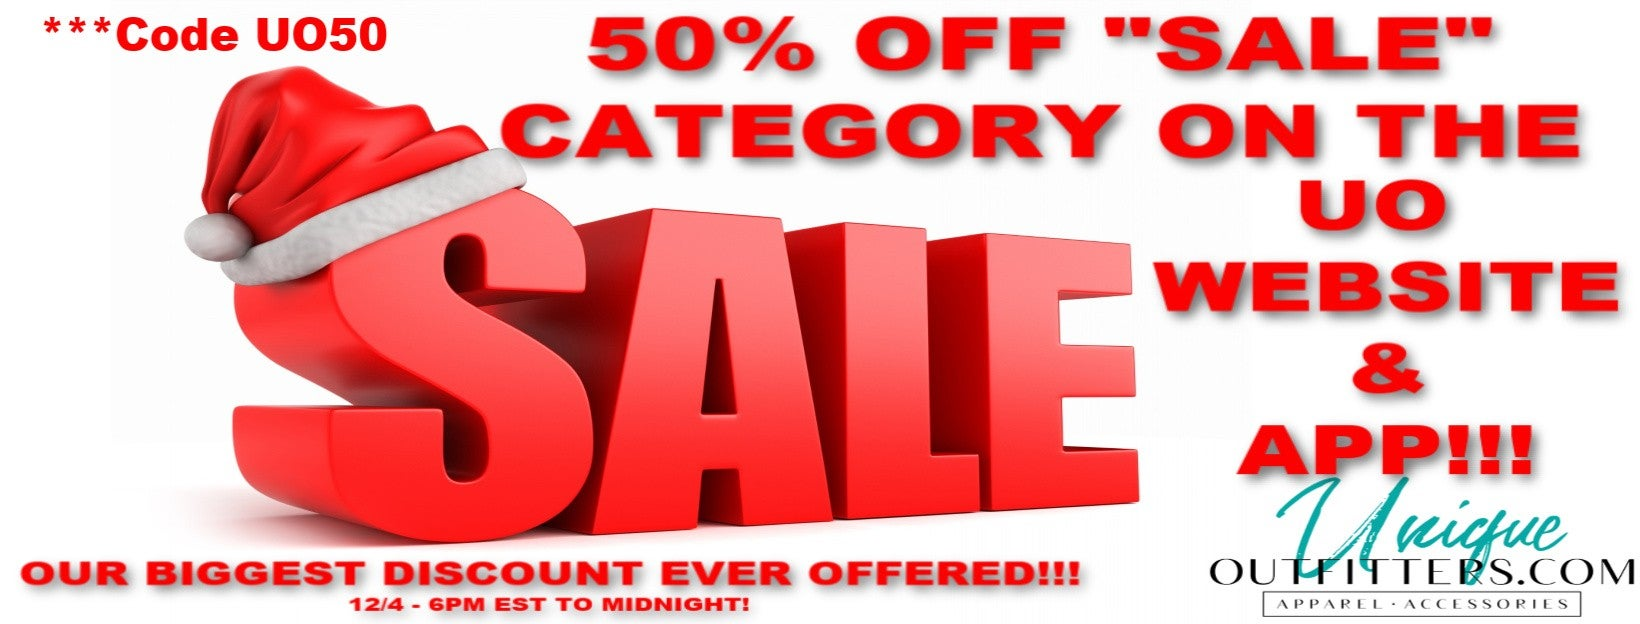 50% off sale category